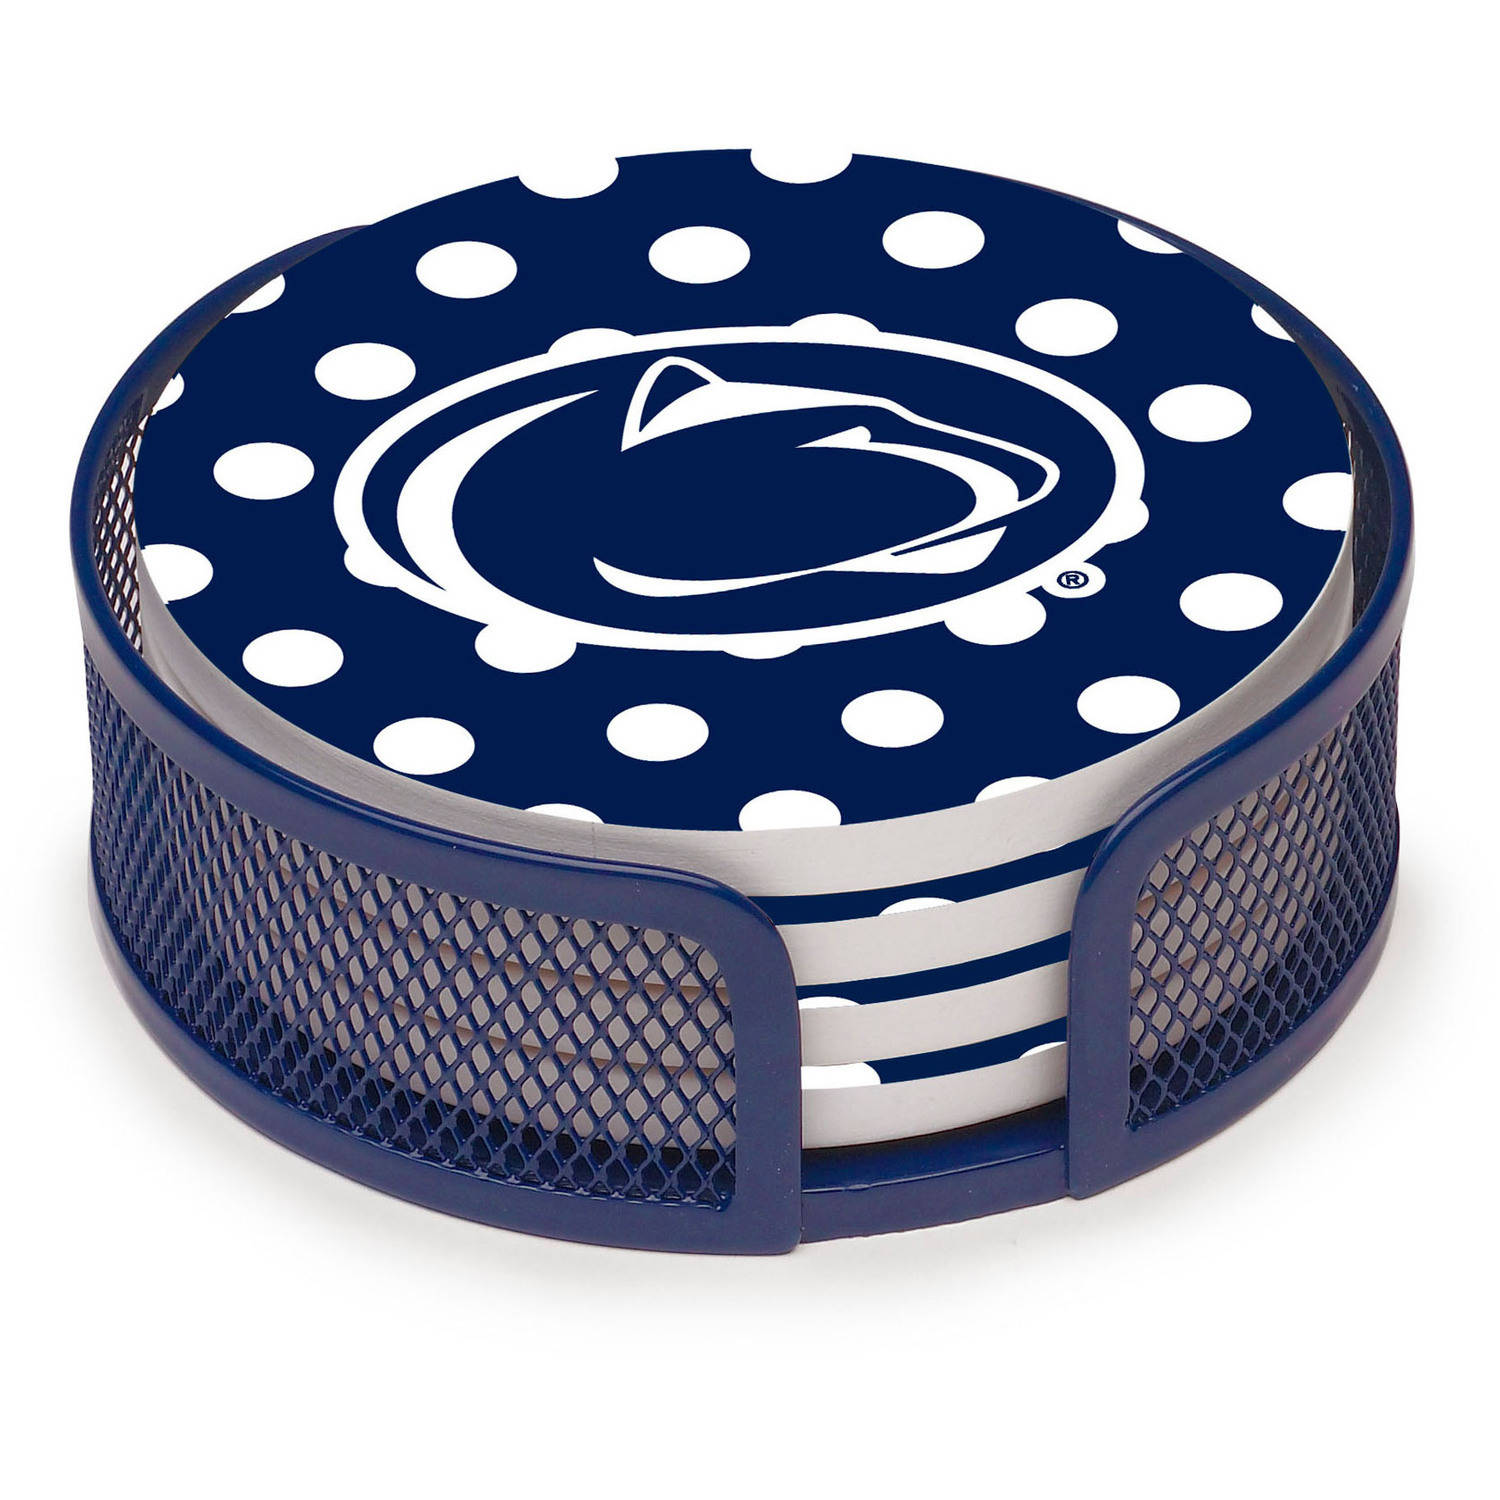 Thirstystone Stoneware Drink Coaster Set with Holder Included, Penn State University Dots